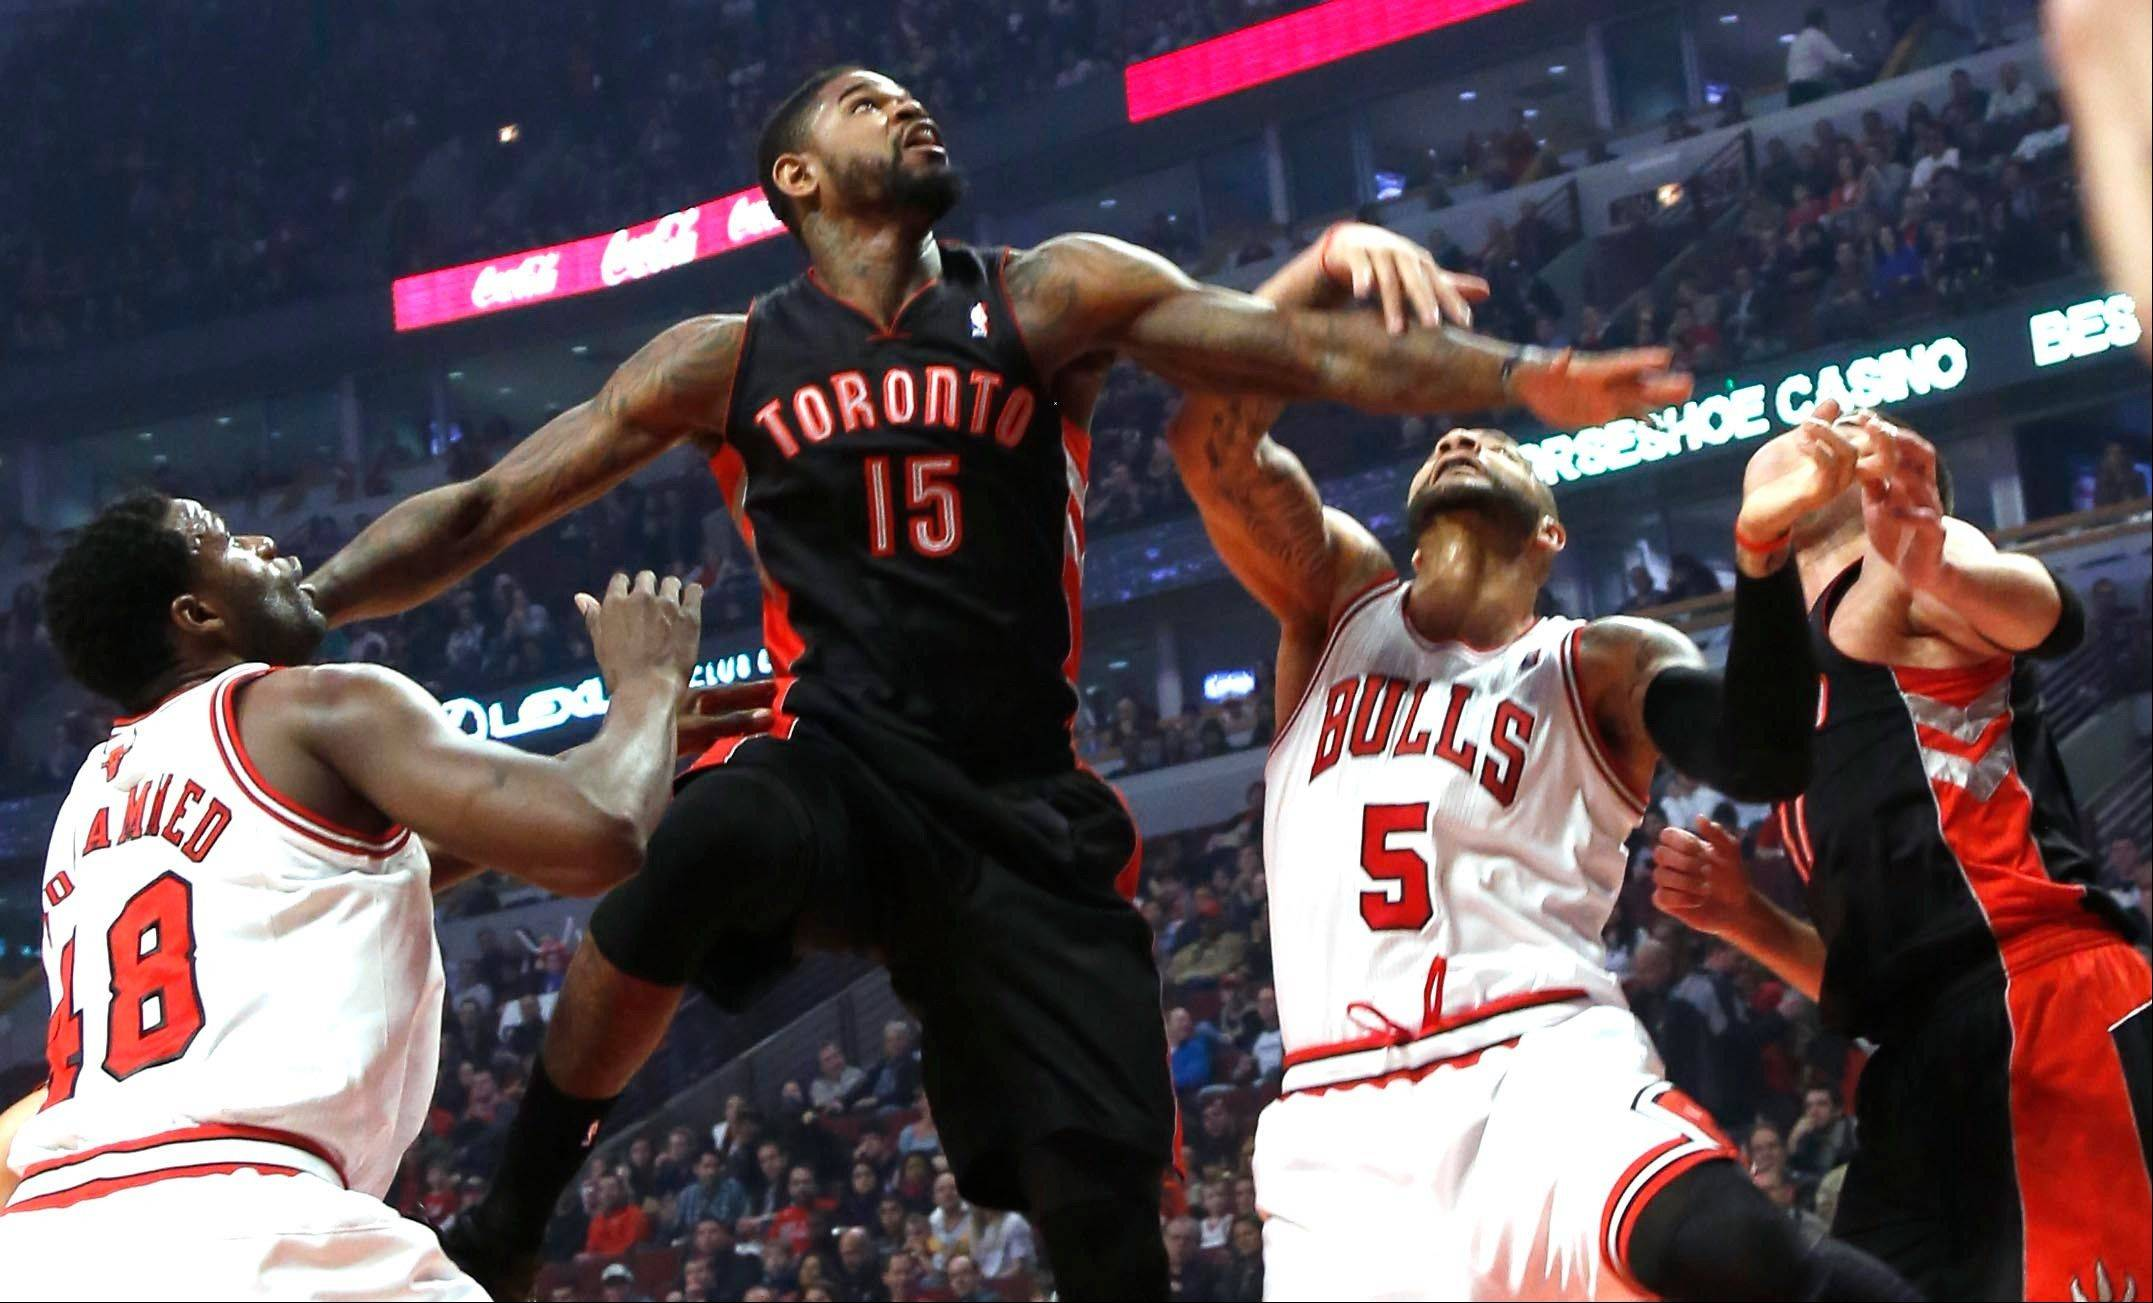 Toronto's Amir Johnson leaps above Chicago Bulls players Nazr Mohammed and Carlos Boozer trying to get a rebound during the first quarter in an NBA basketball game on Tuesday, April 9, 2013 in Chicago.